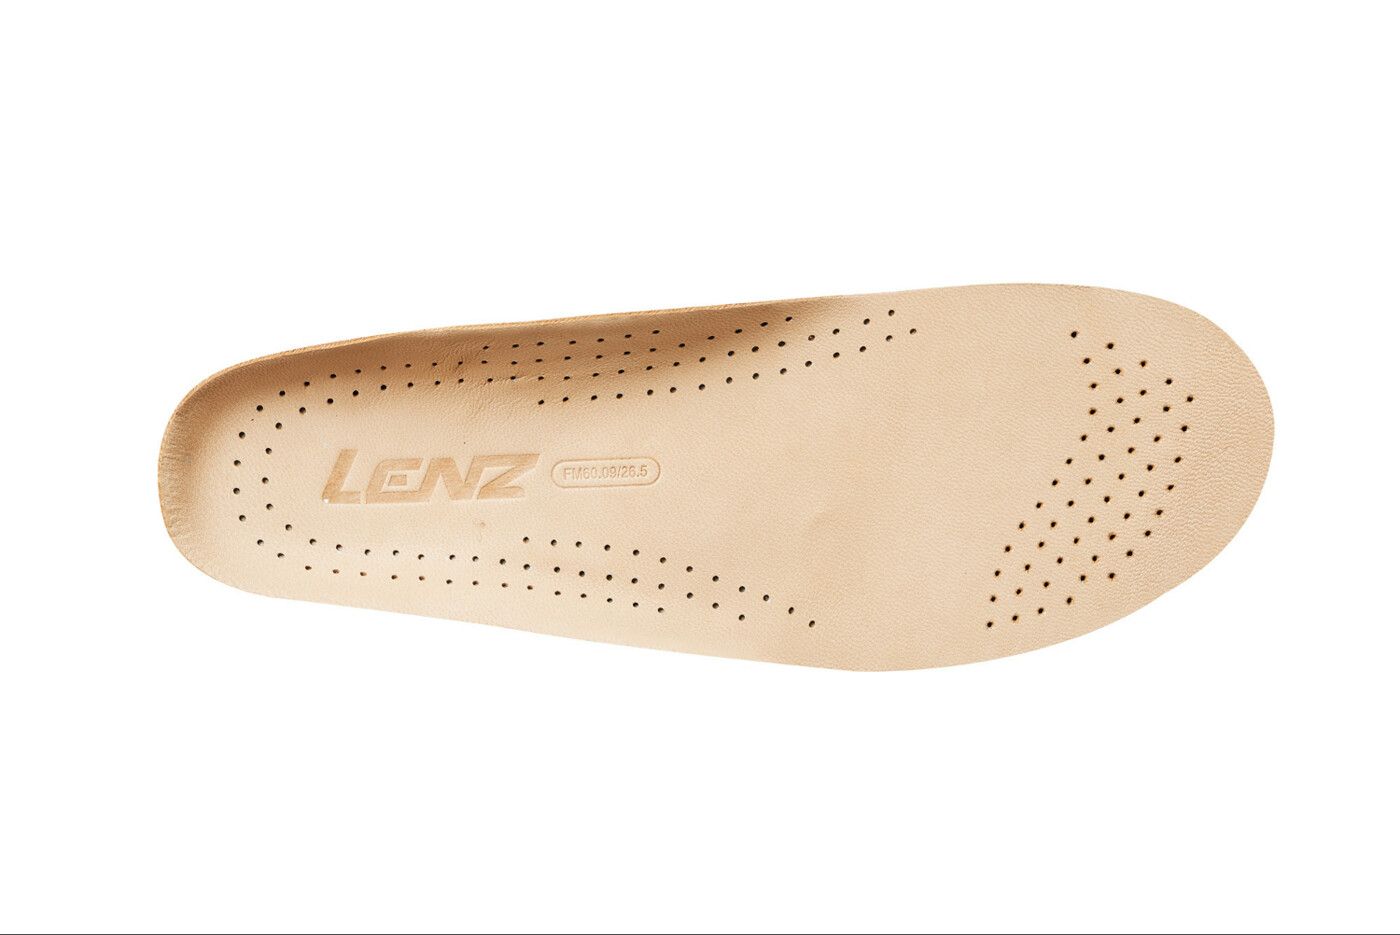 LENZ GMBH SOHLE INSOLDE TOP LEATHER PERFORATED CUSTOMIZED INSOLES LENZ